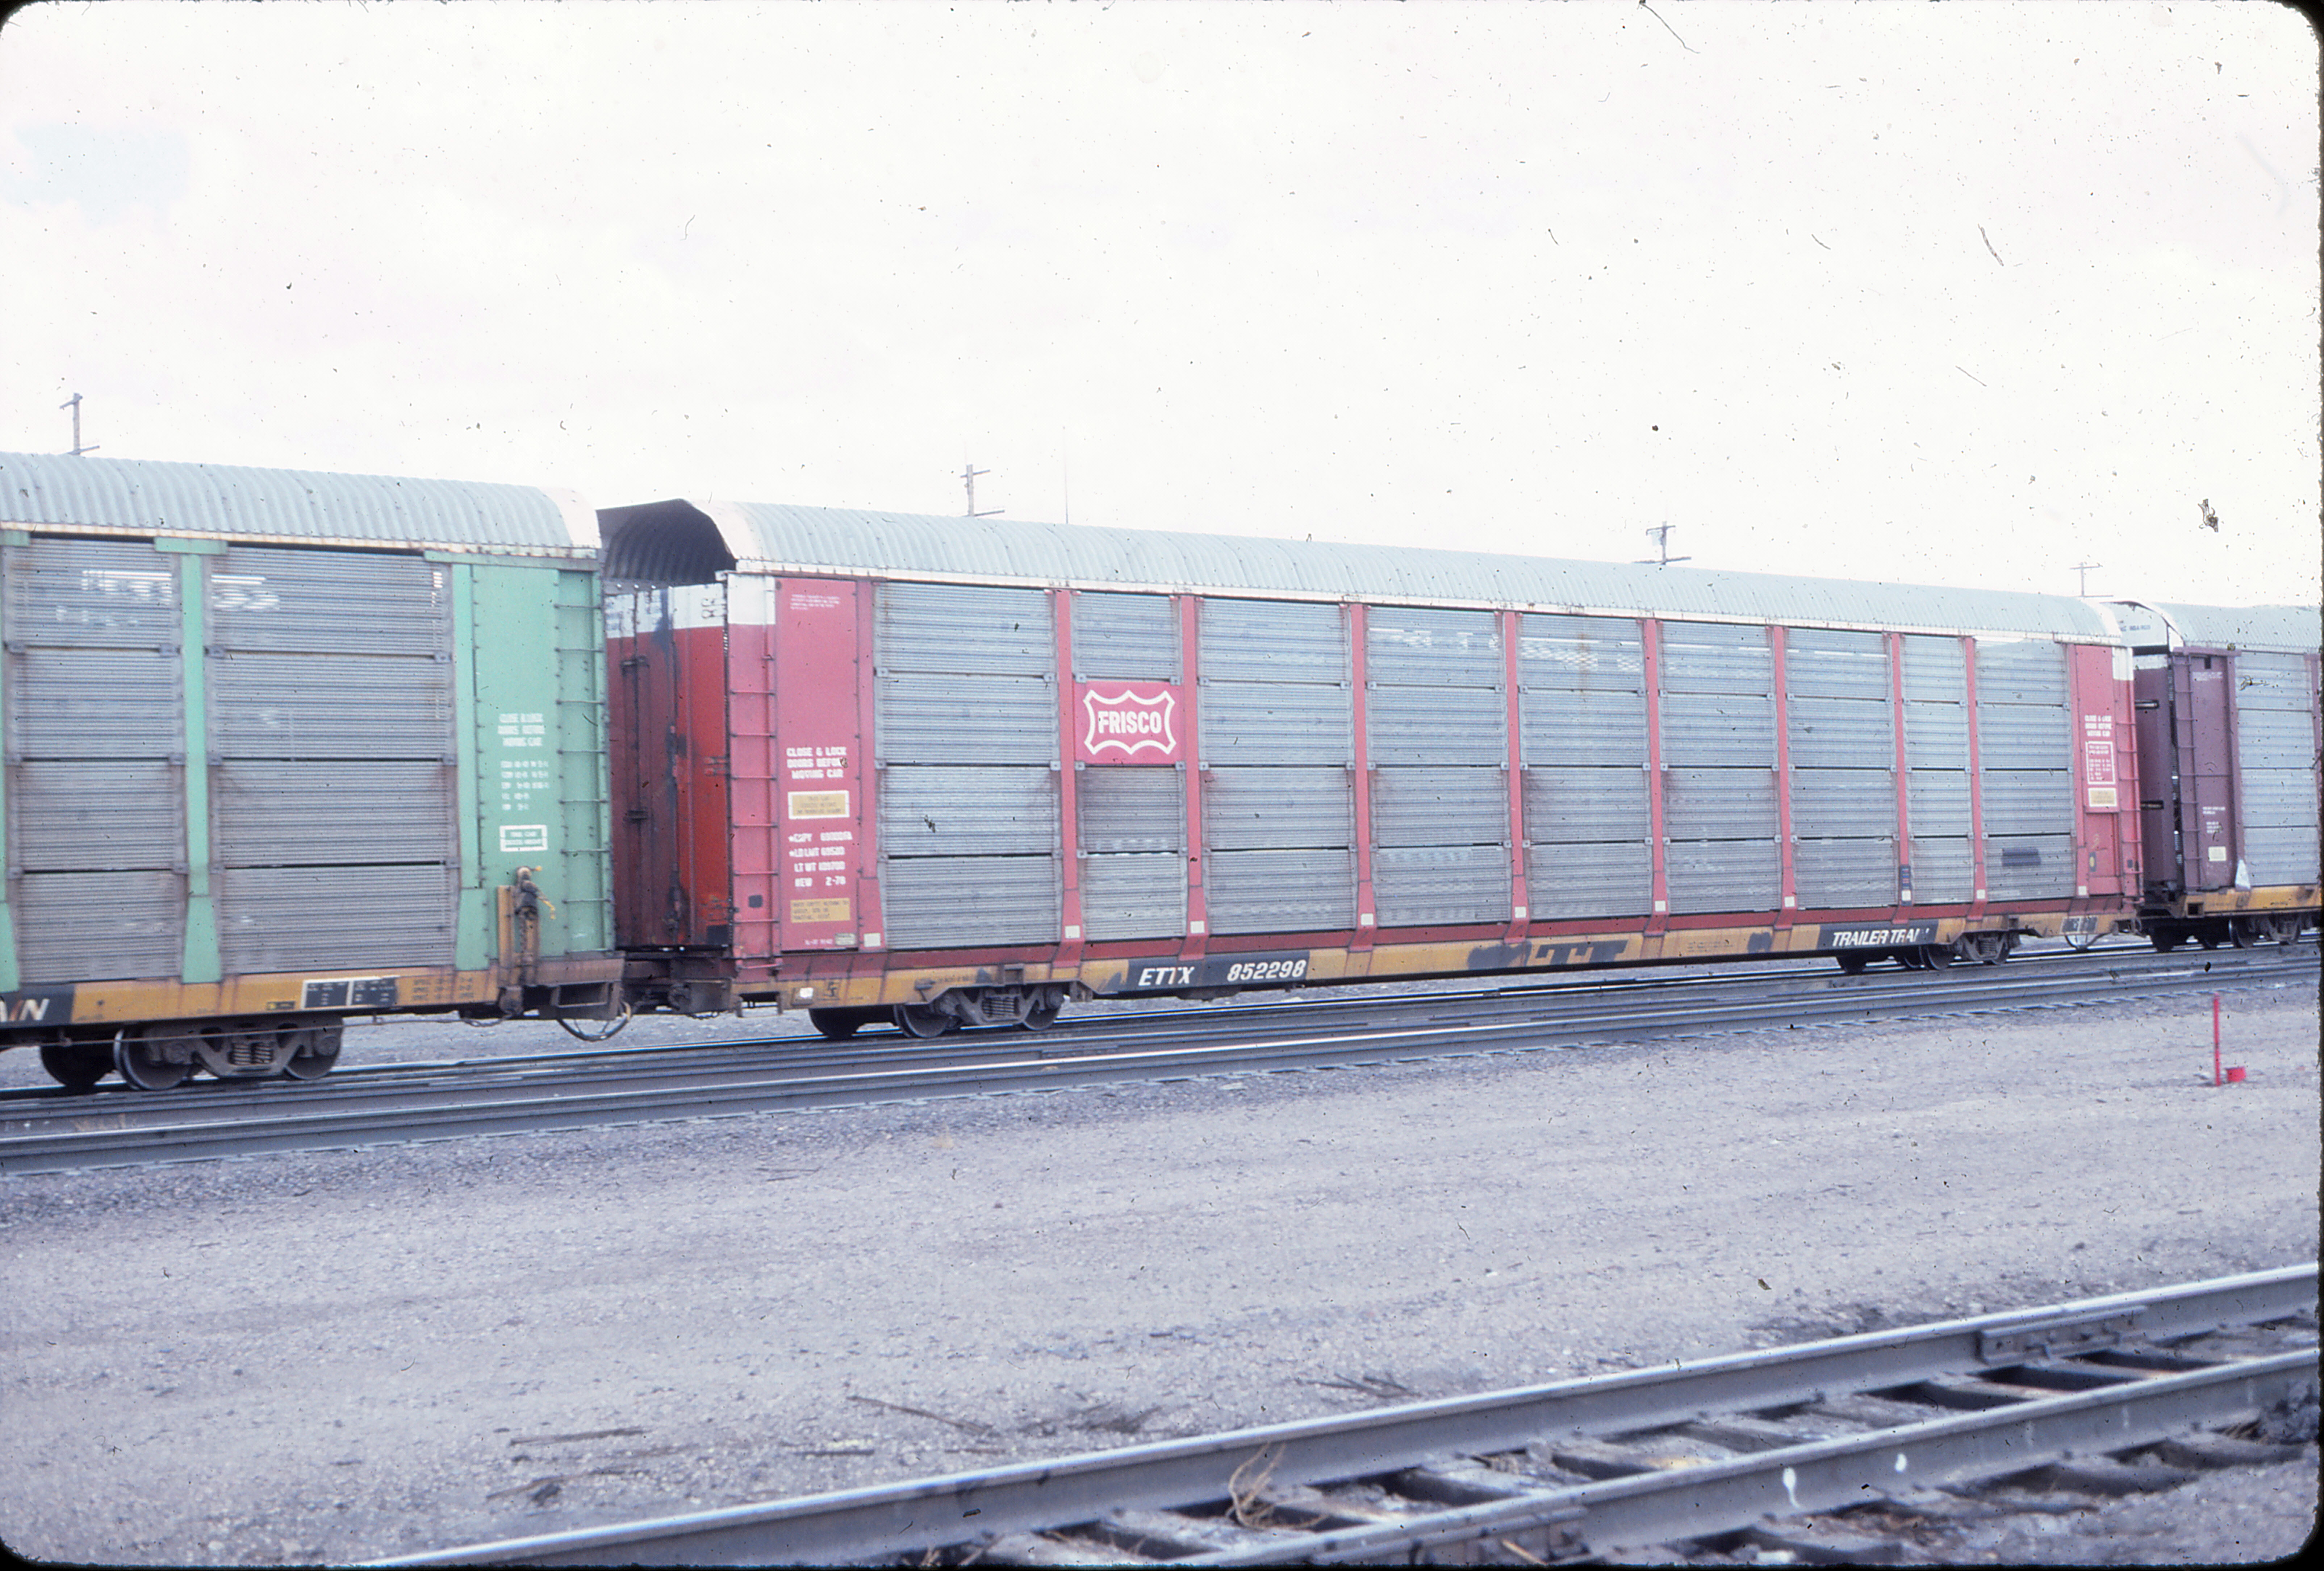 Autorack 852298 at Green River, Wyoming in August 1984